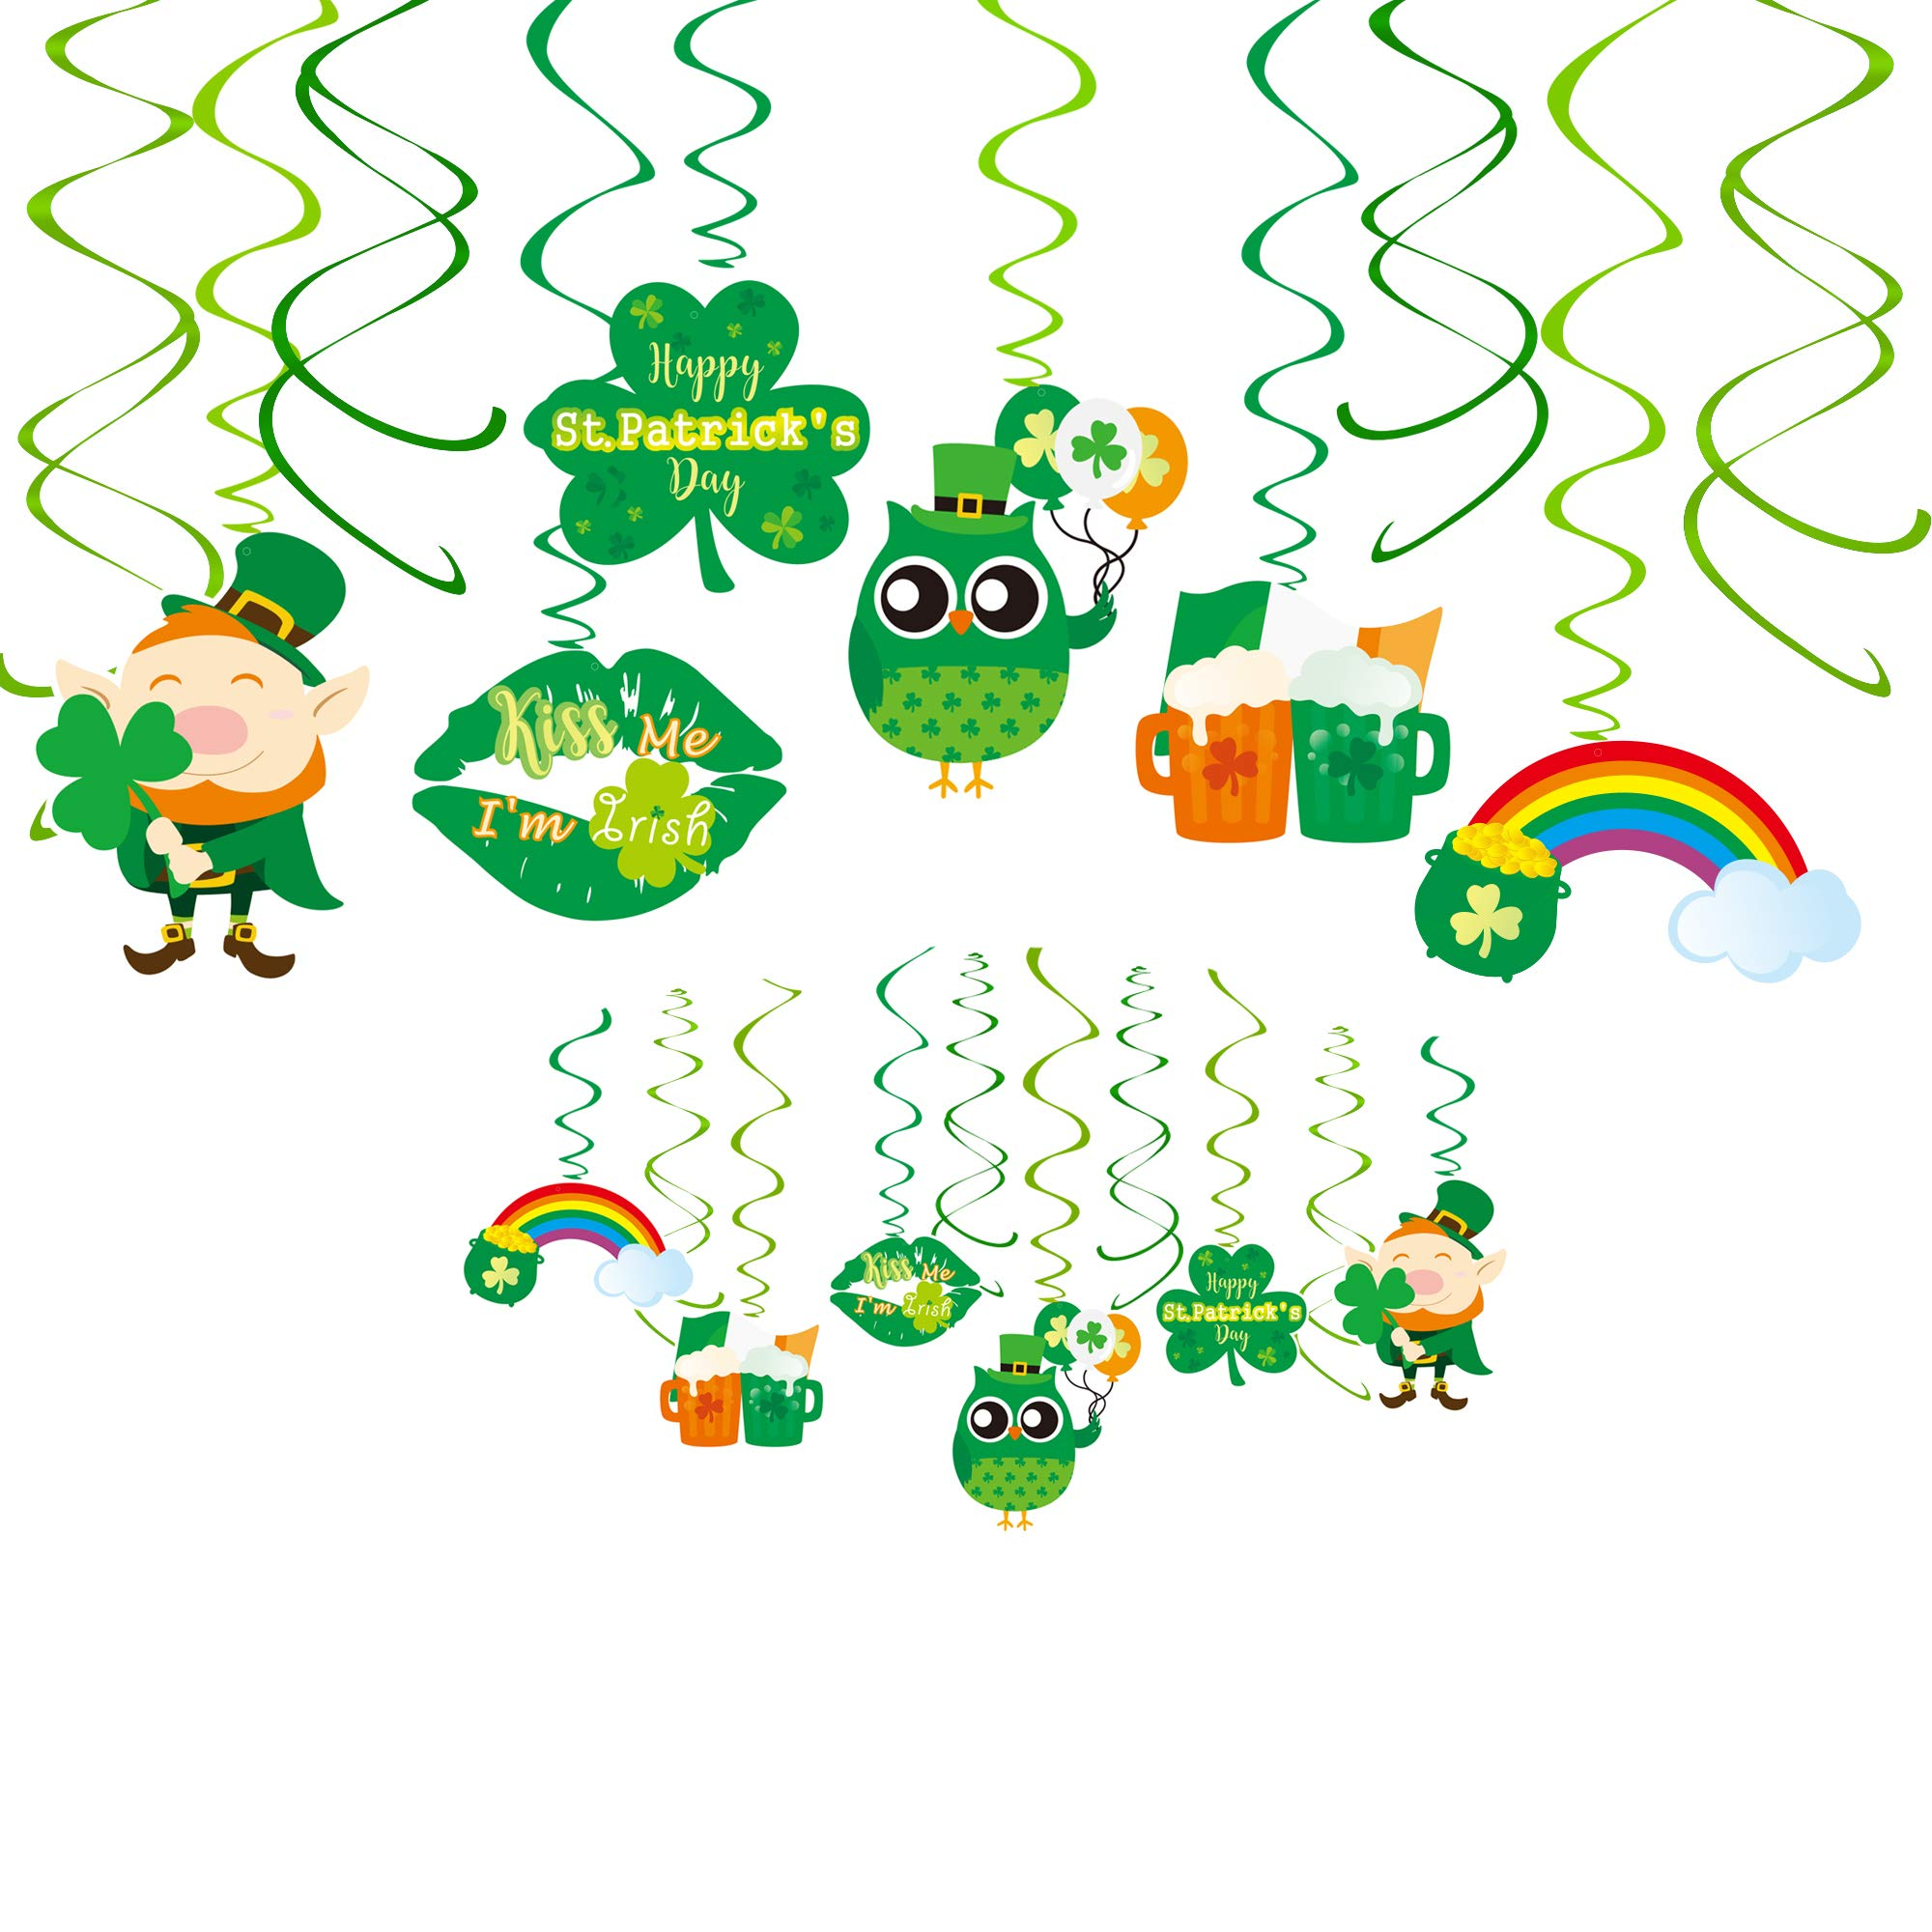 Yaaaaasss! St. Patrick's Day Hanging Swirl Decorations, Party Foil Hanging Swirls Ceiling Decors Swirl Streamers with Cutouts for St. Patrick's Day Party Supplies Photo Booth Backdrop, 30CT by Denis Valentinych